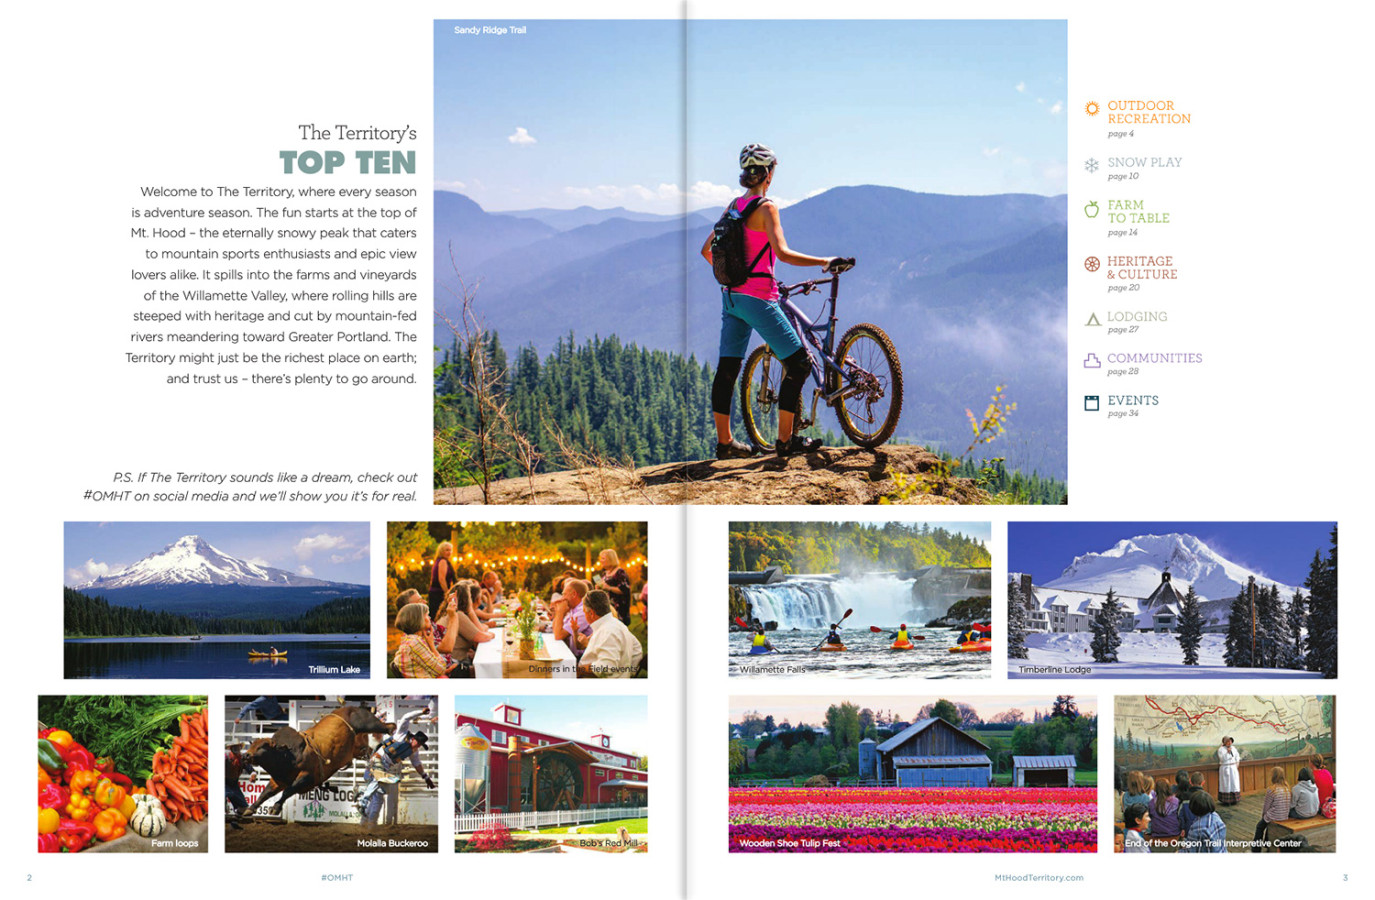 Splash page on the 2015 Travel Planner